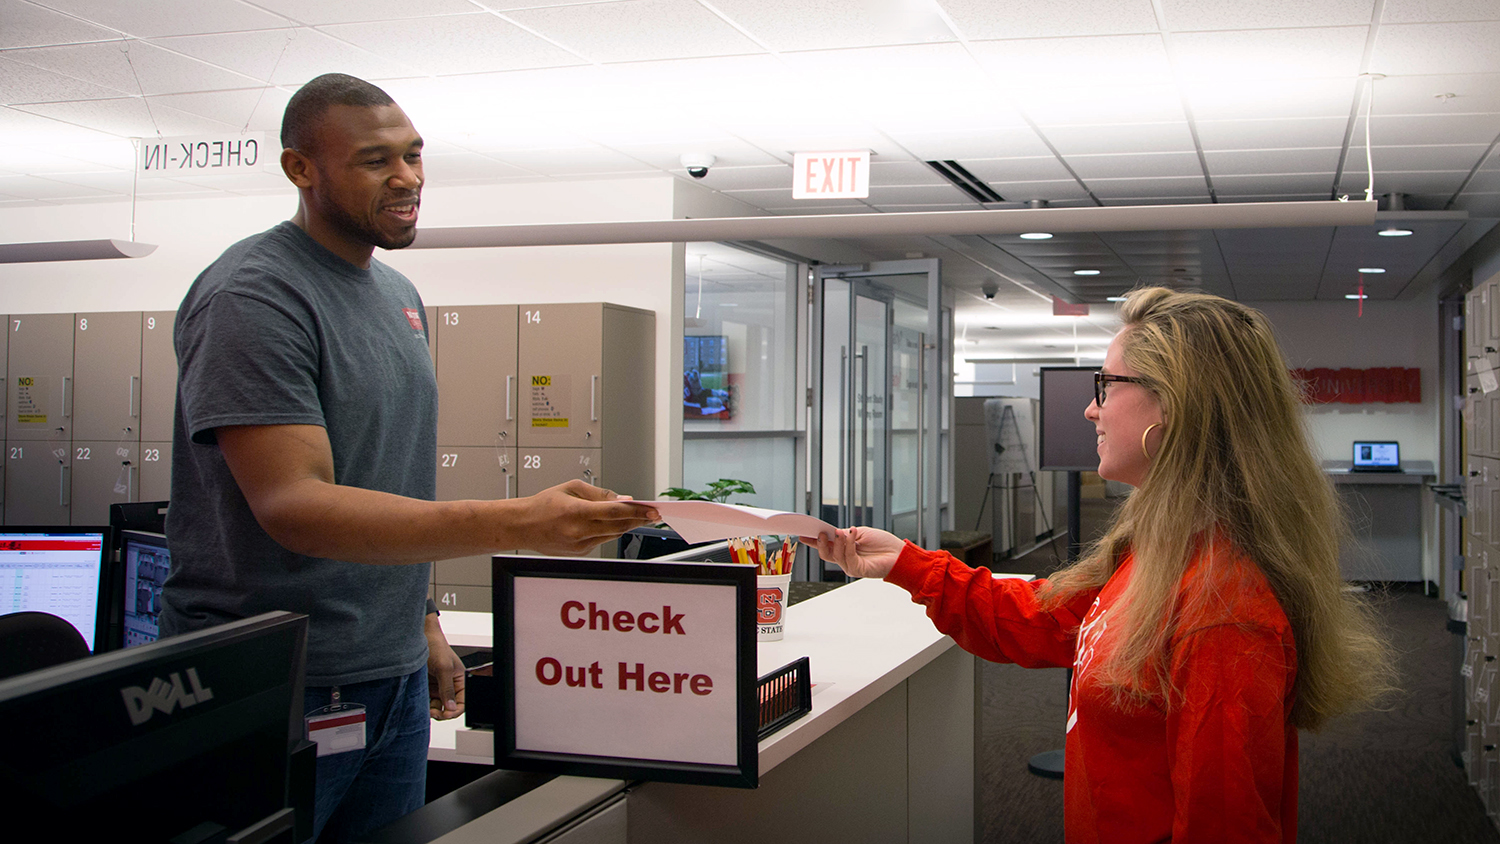 DELTA Testing Services Associate Brad Collins (left) pictured with a student who is turning in a test at the Centennial Campus Test Center.